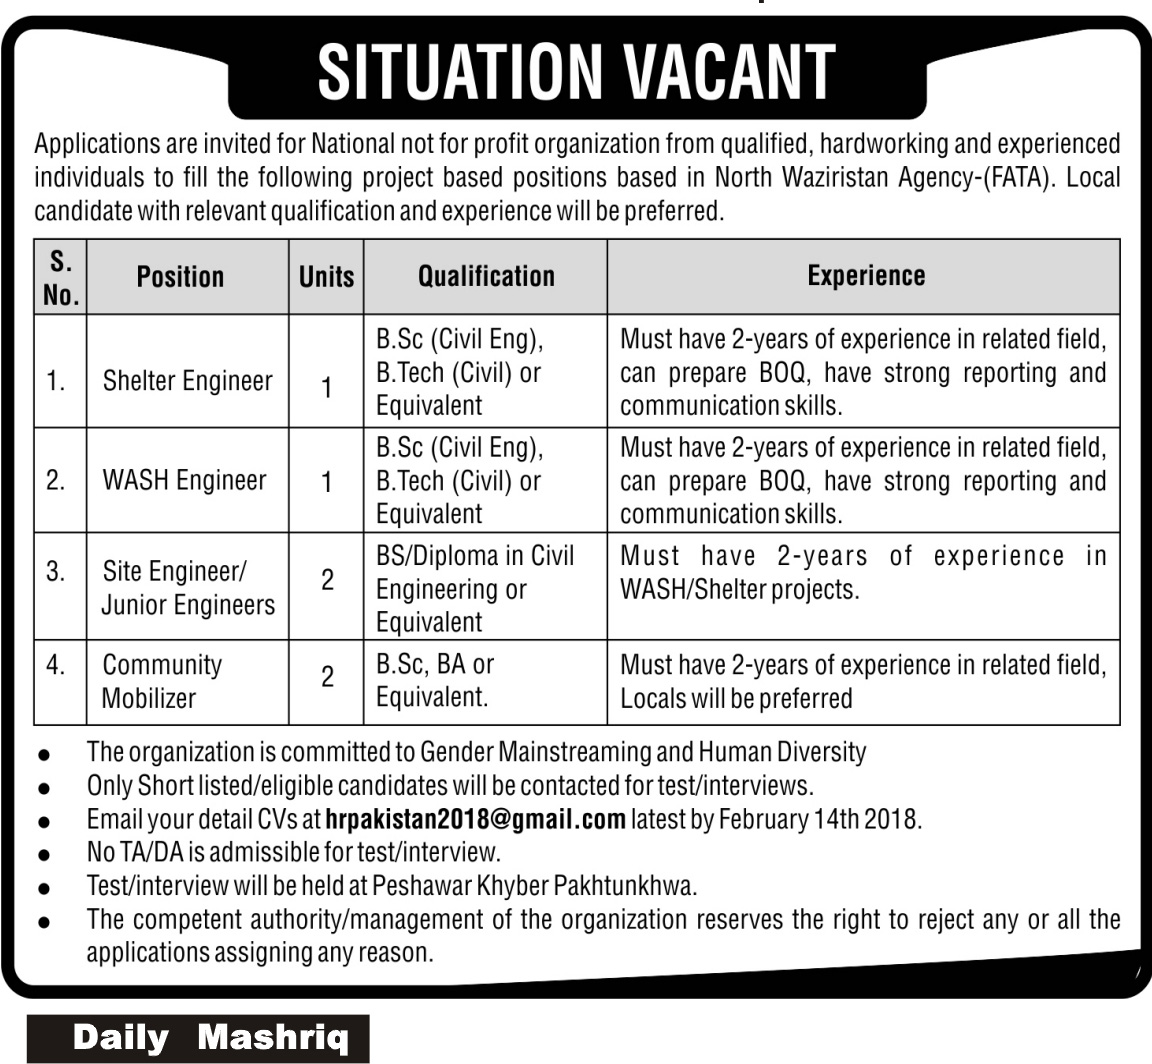 FAtA based Public Sector Organization Jobs 10th February 2018 Daily Mashriq Newspaper